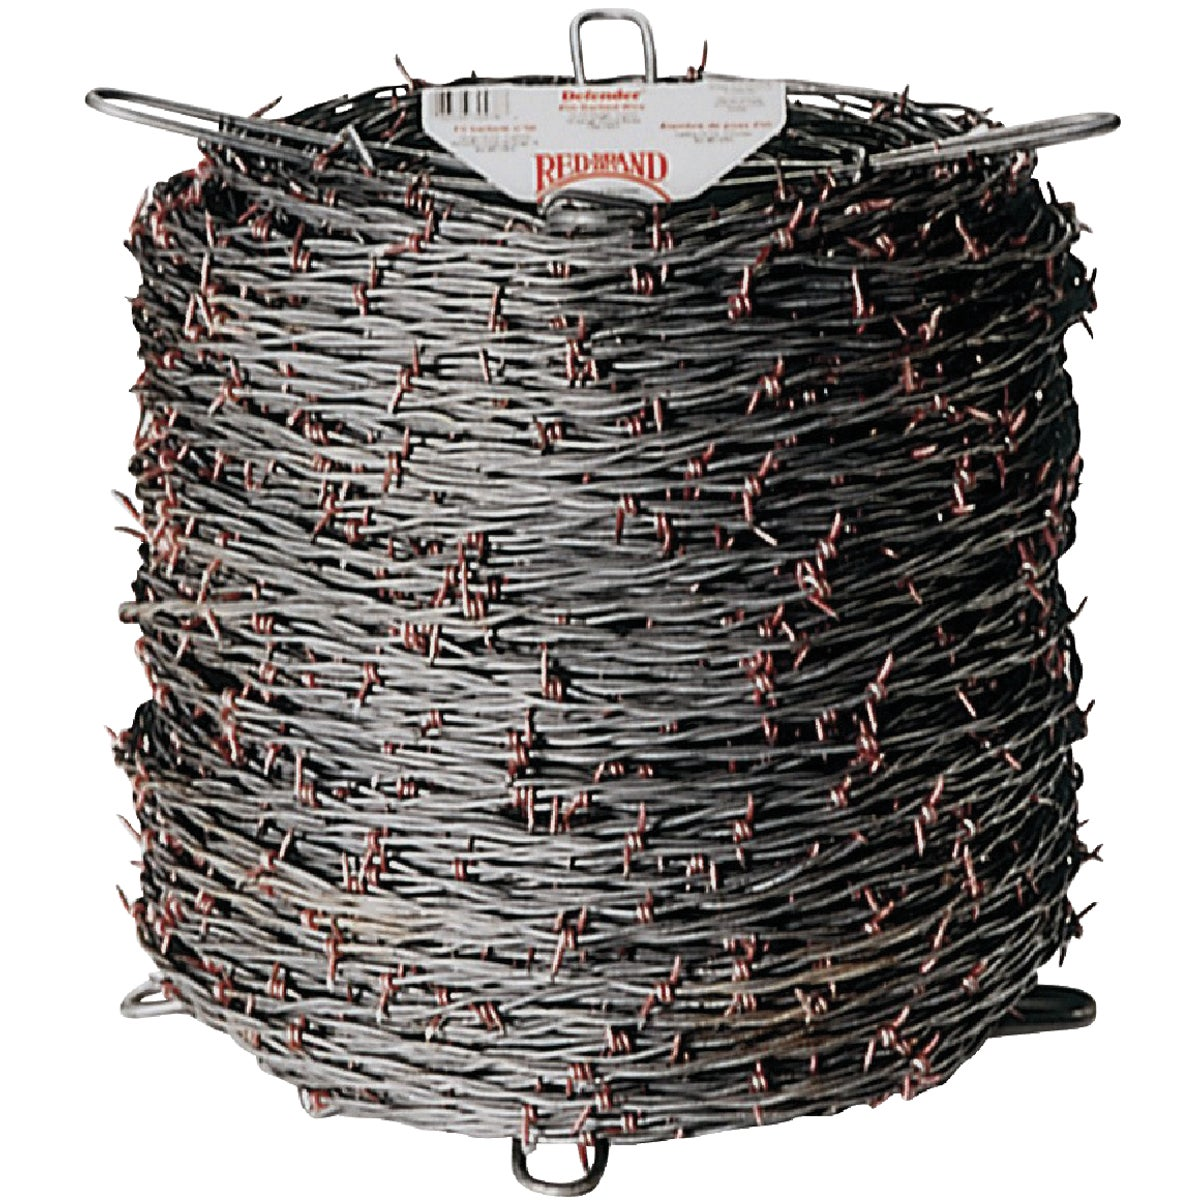 2-PT 12.5GA BARB WIRE - 70476 by Keystone Stl & Wire